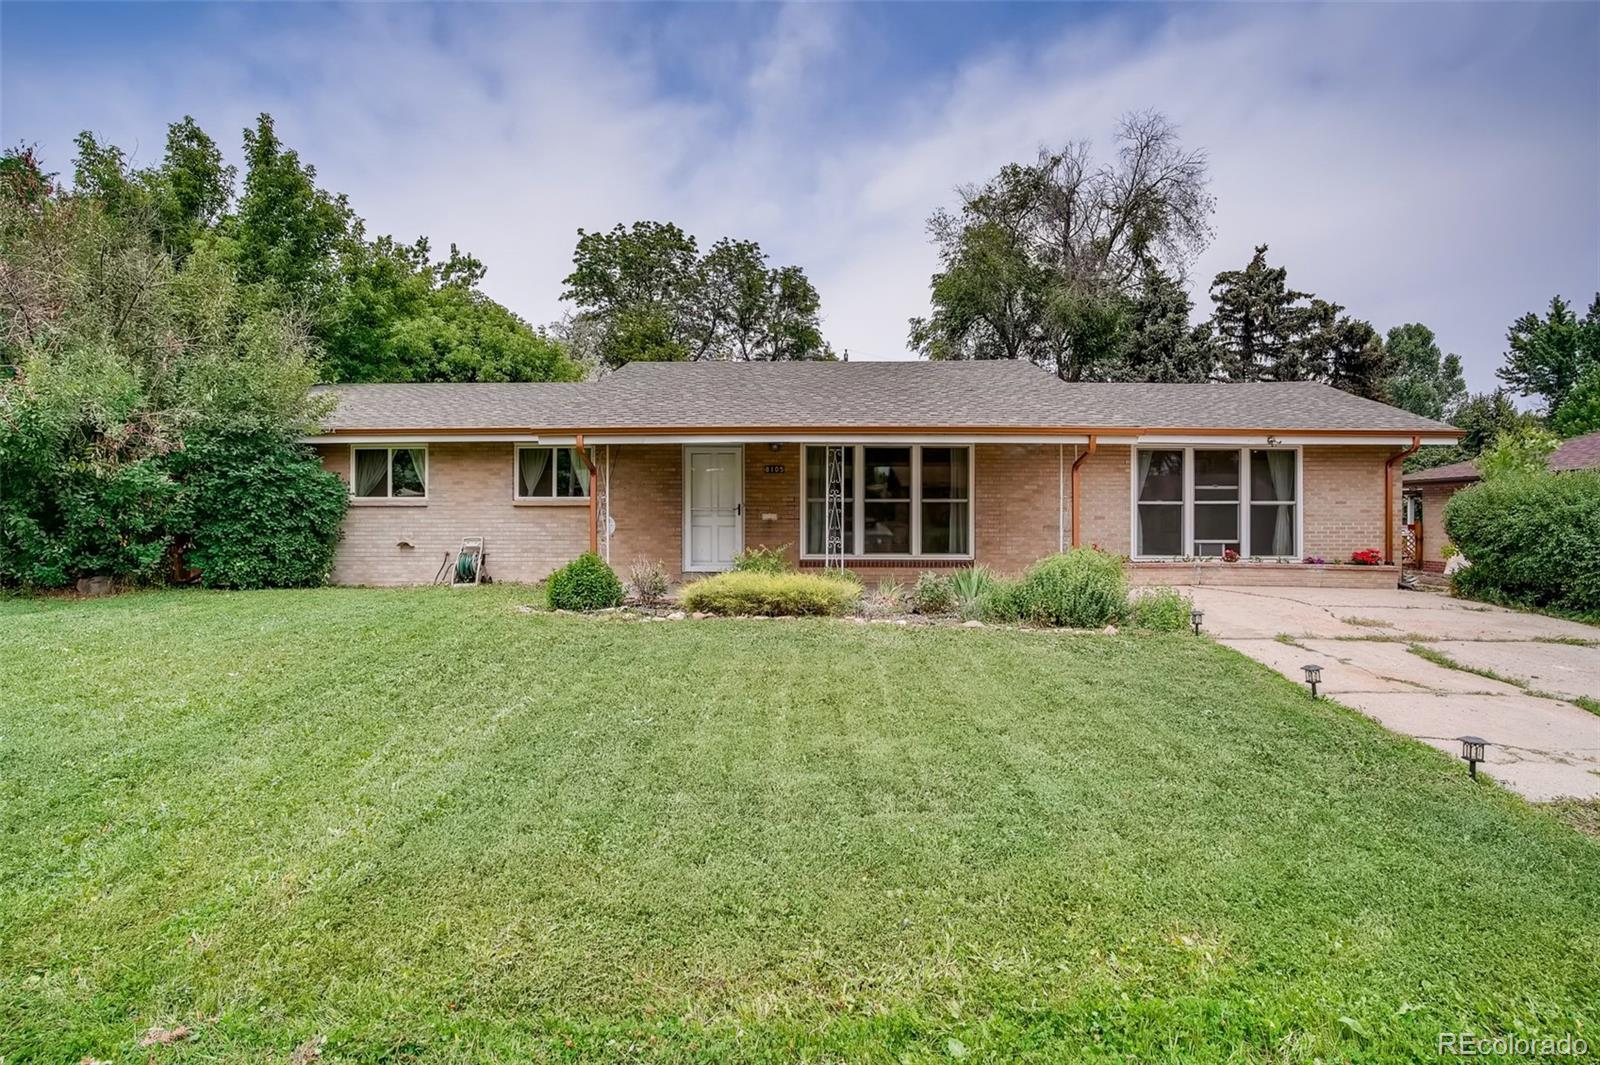 8105 W 16th Place, Lakewood, CO 80214 - #: 2426278